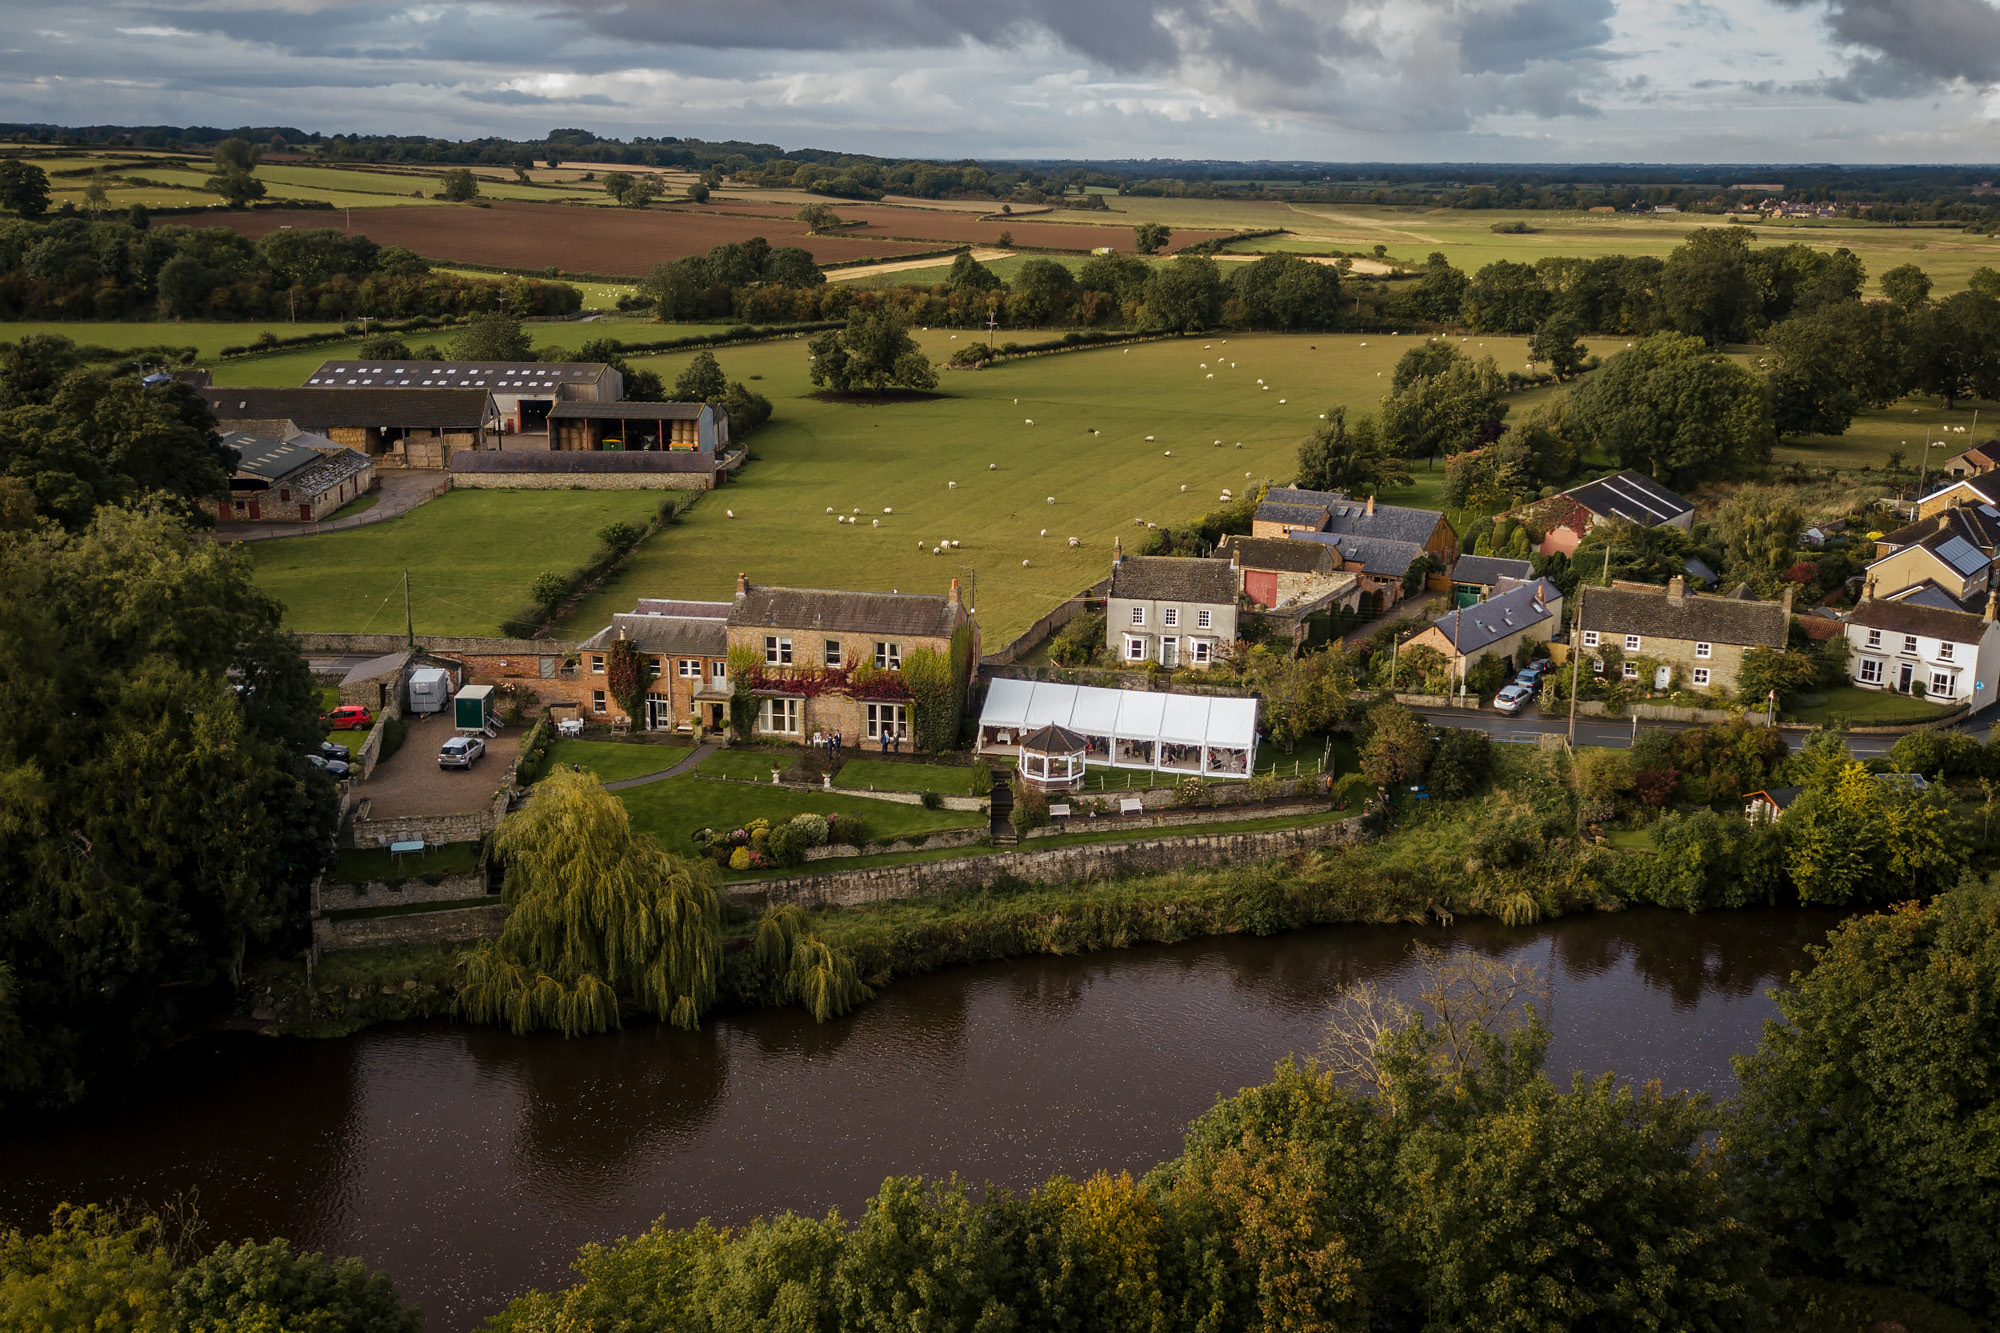 Aerial shot of Tanfield House and the surrounding fields in Yorkshire